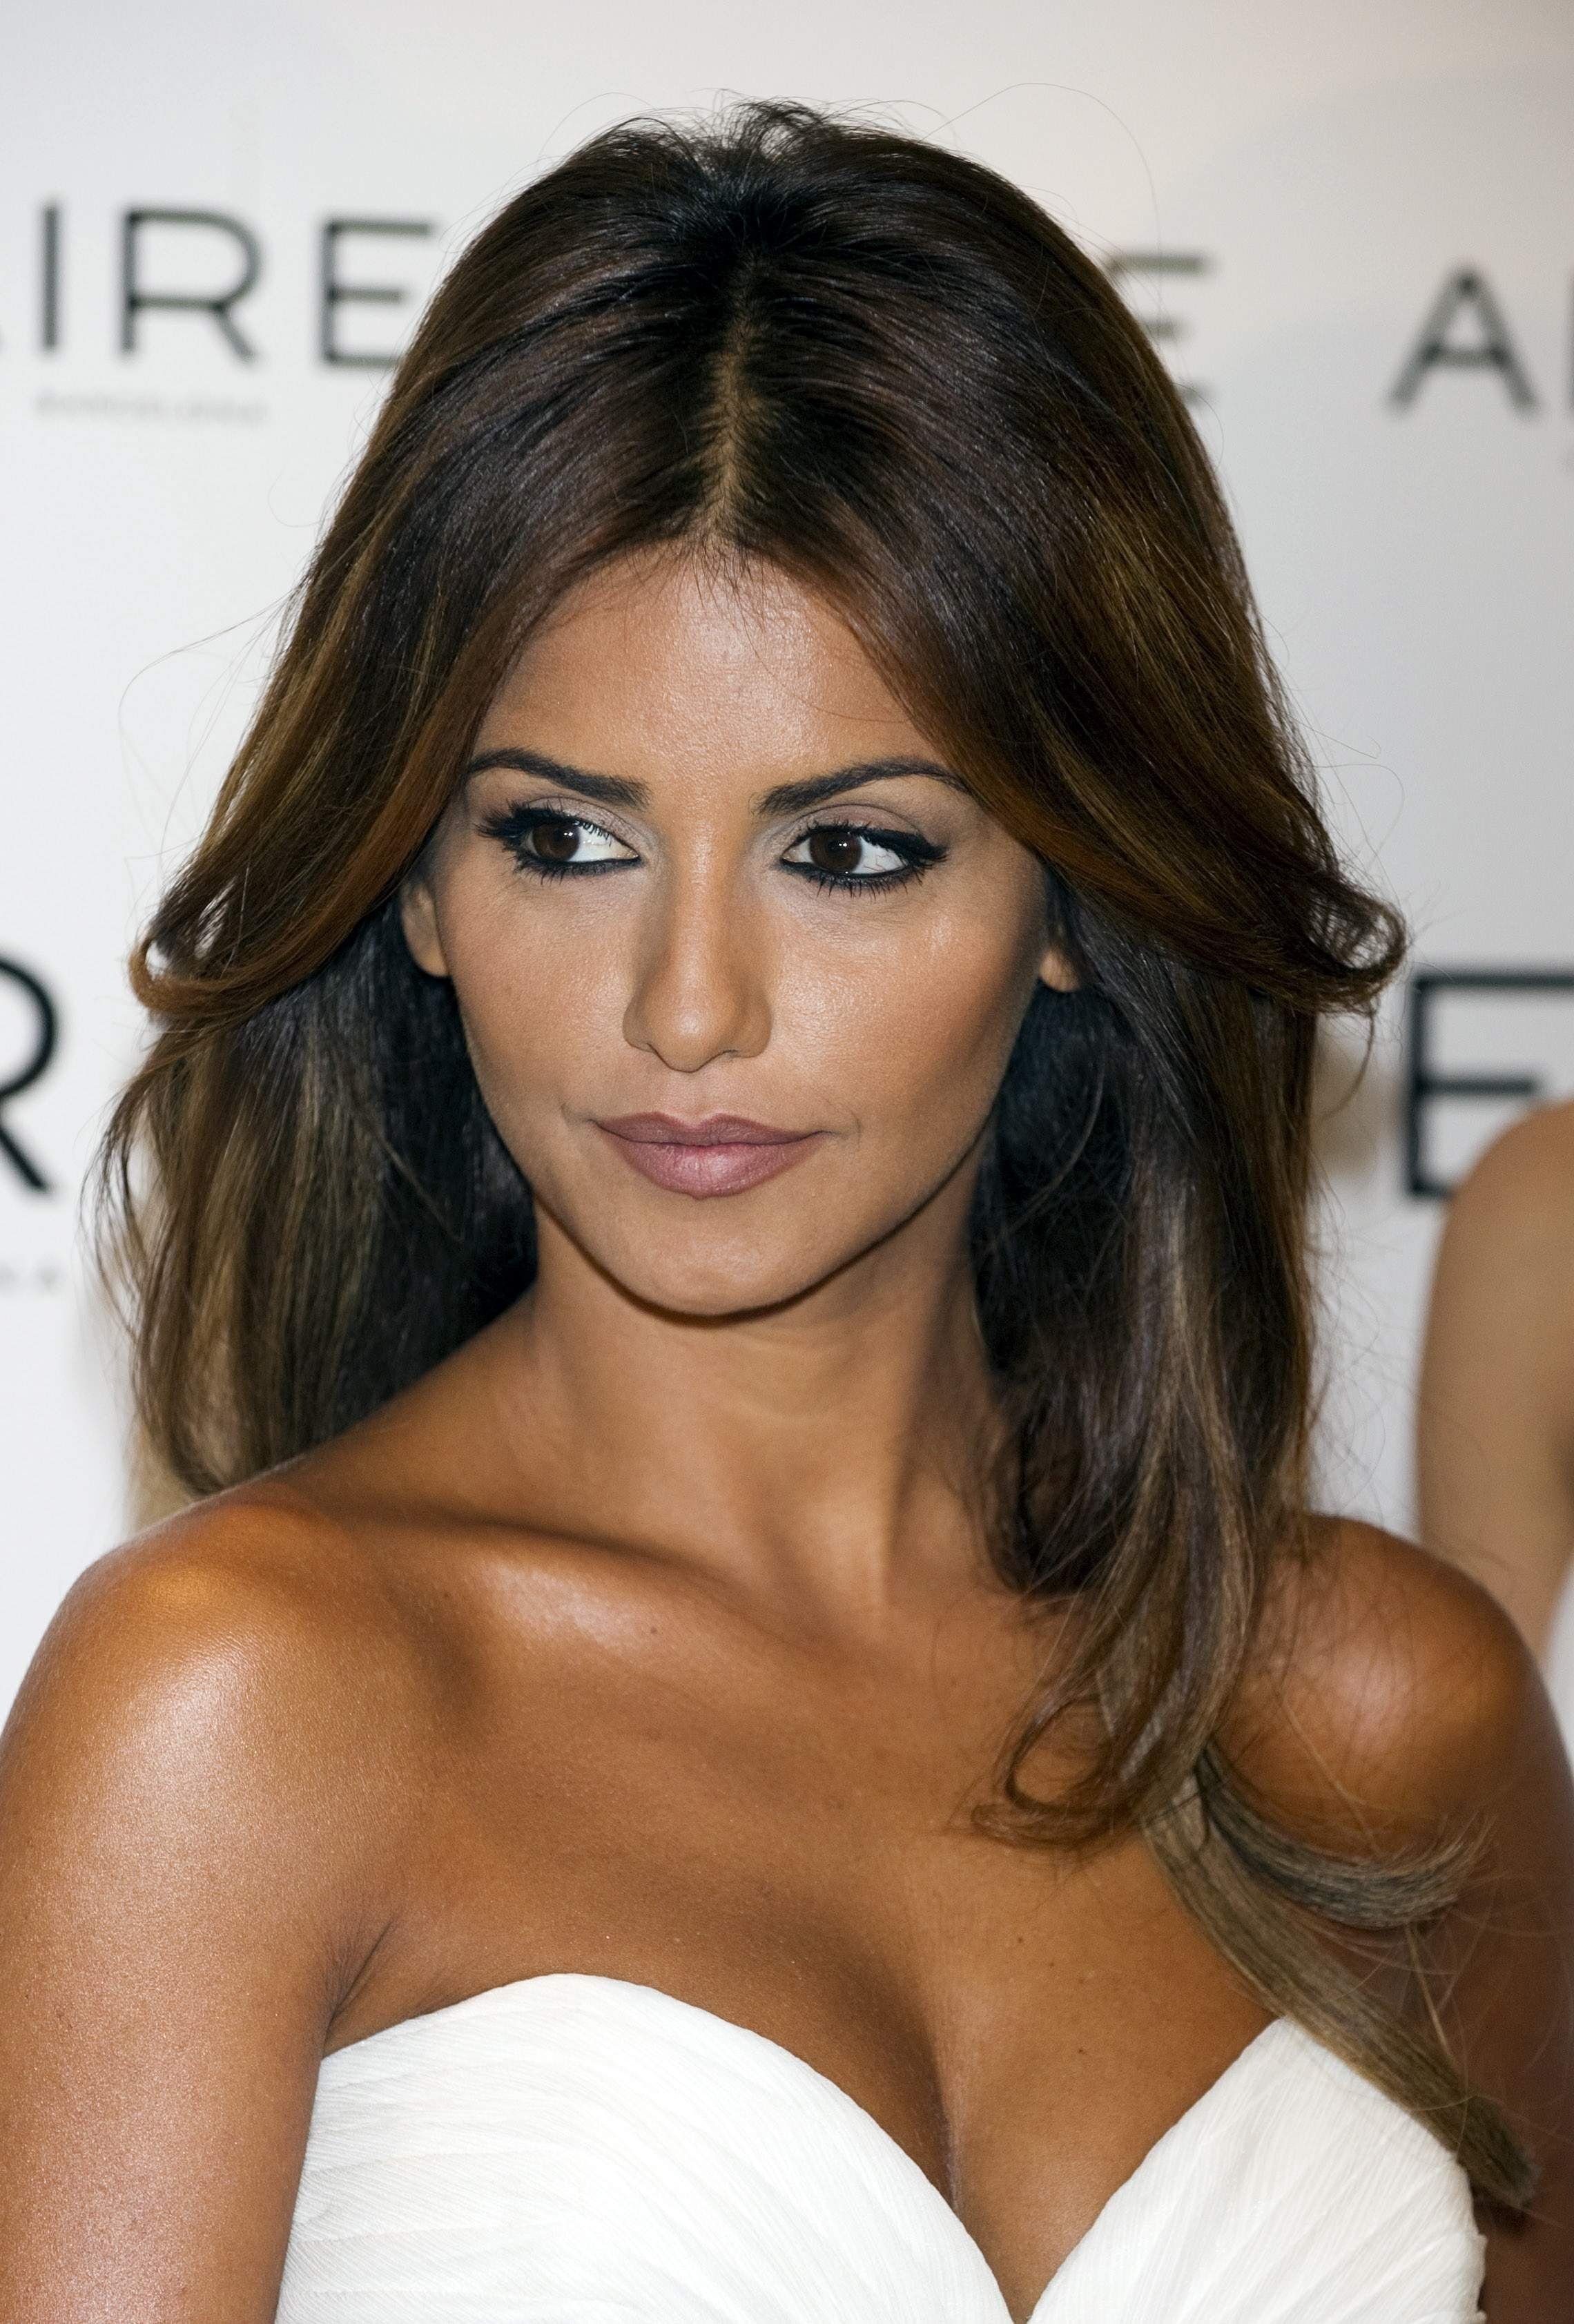 Photos Monica Cruz nude photos 2019